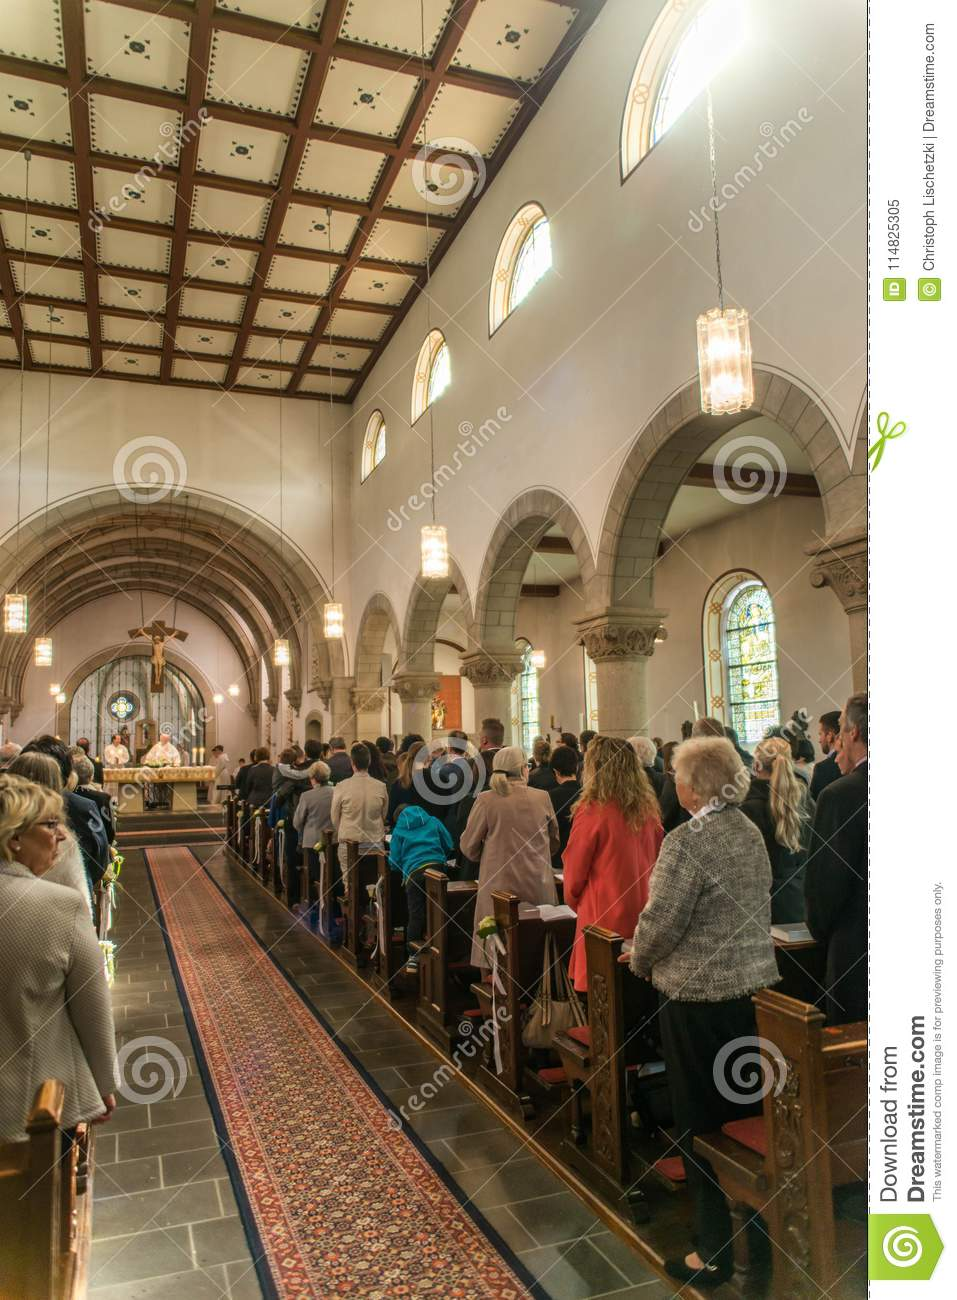 Rieden Germany 15.04.2018 Priest holding church service in front of crowd in theinterior of a church